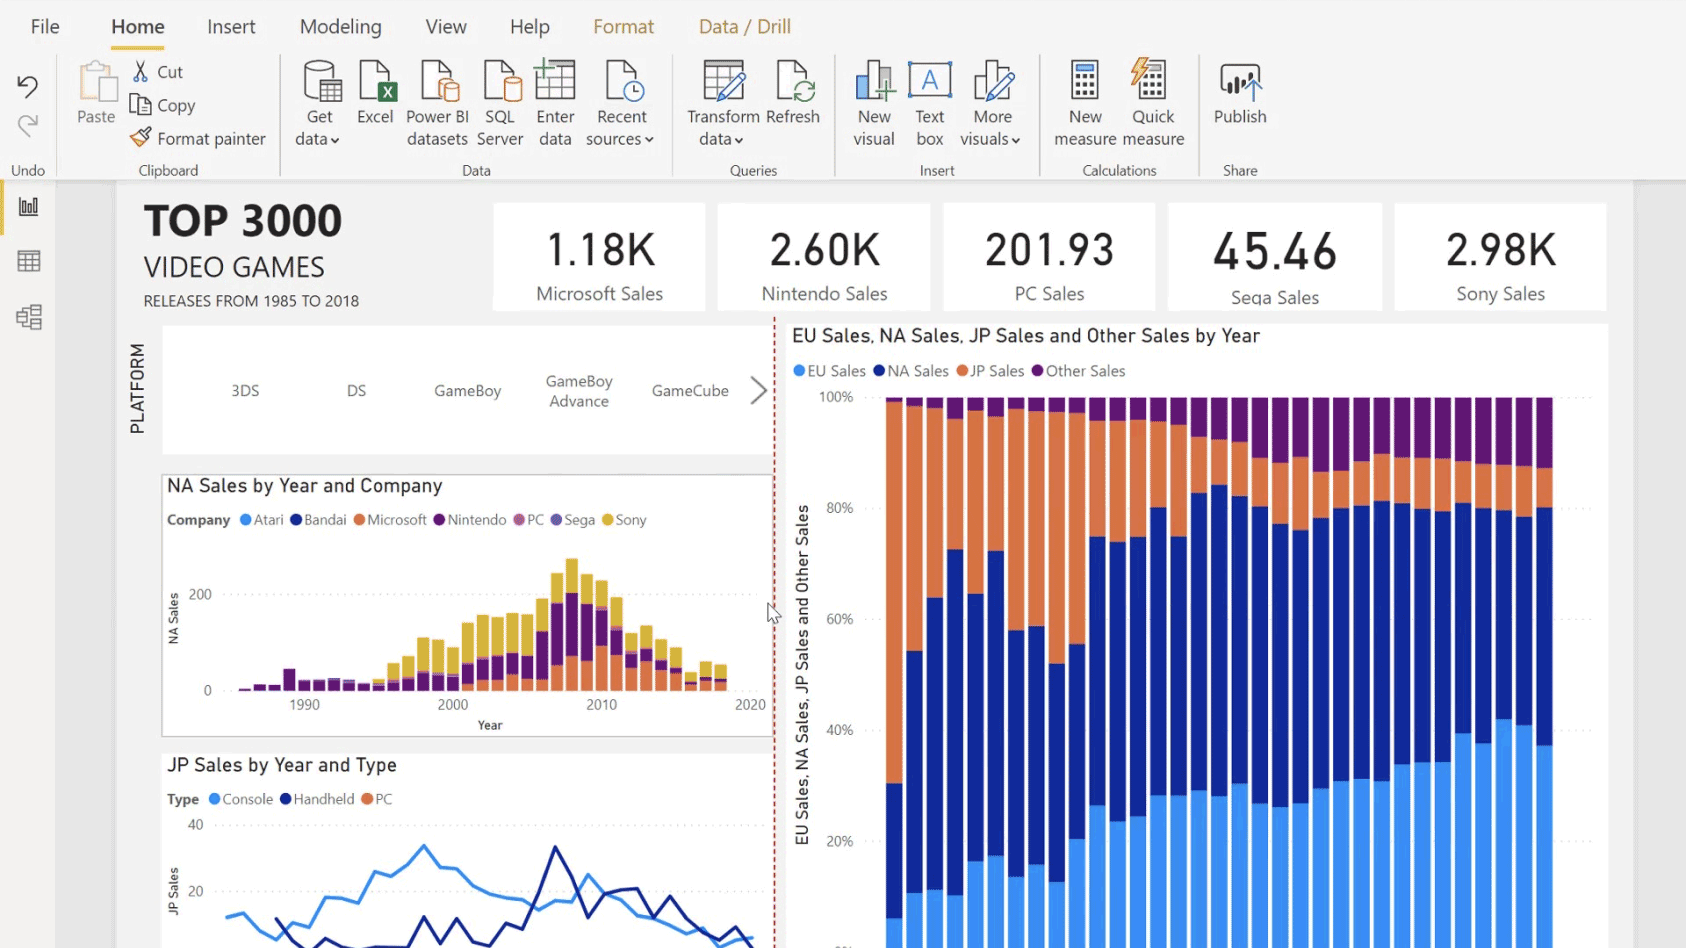 Video Power B I Desktop to Provide advanced analytics with the familiarity of Office